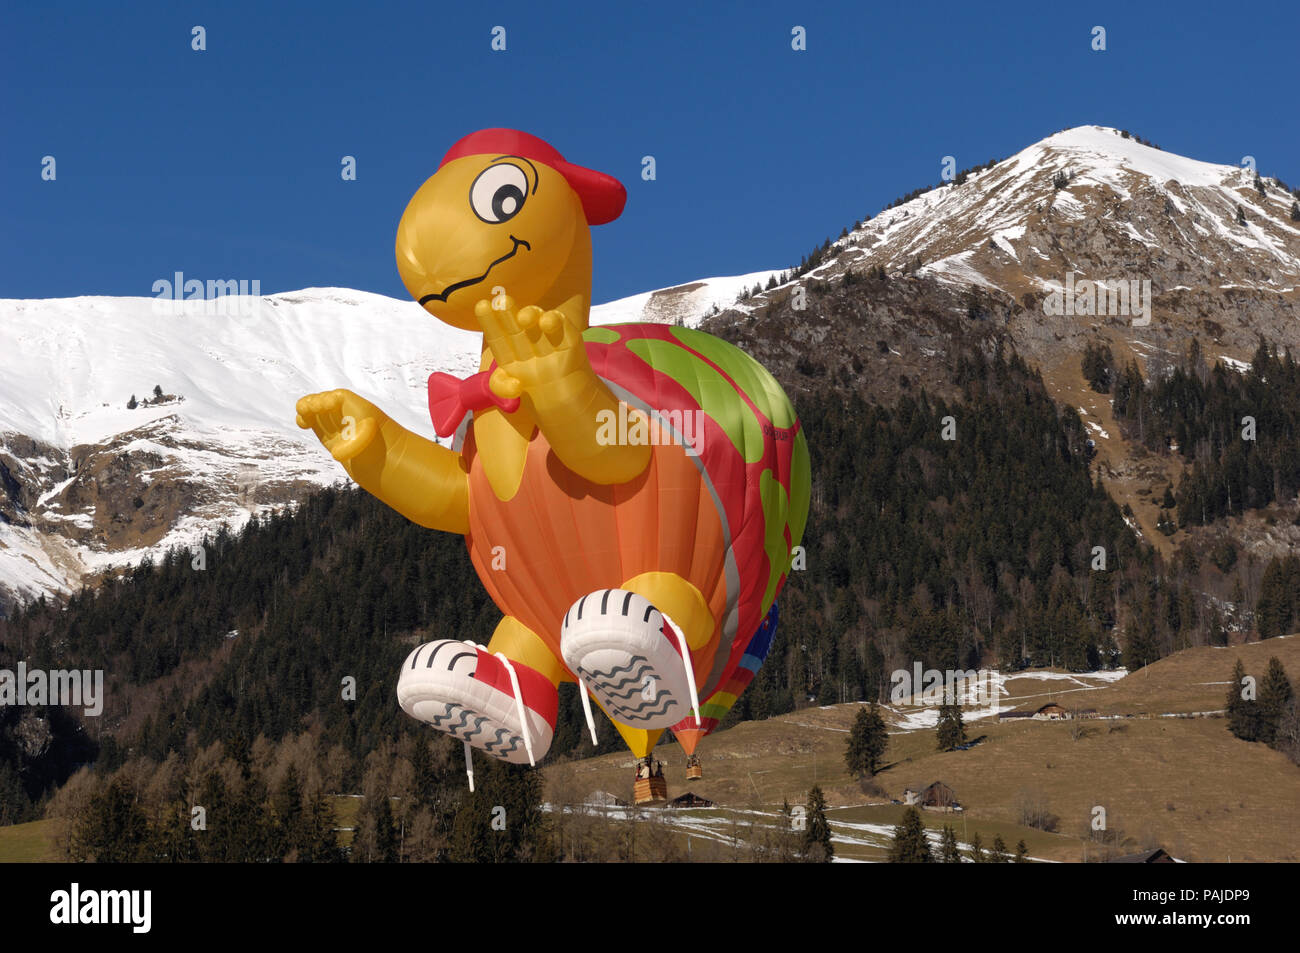 a Cameron SS-120 Turtle special shape hot-air balloon flying with trees, snow and mountains behind Stock Photo